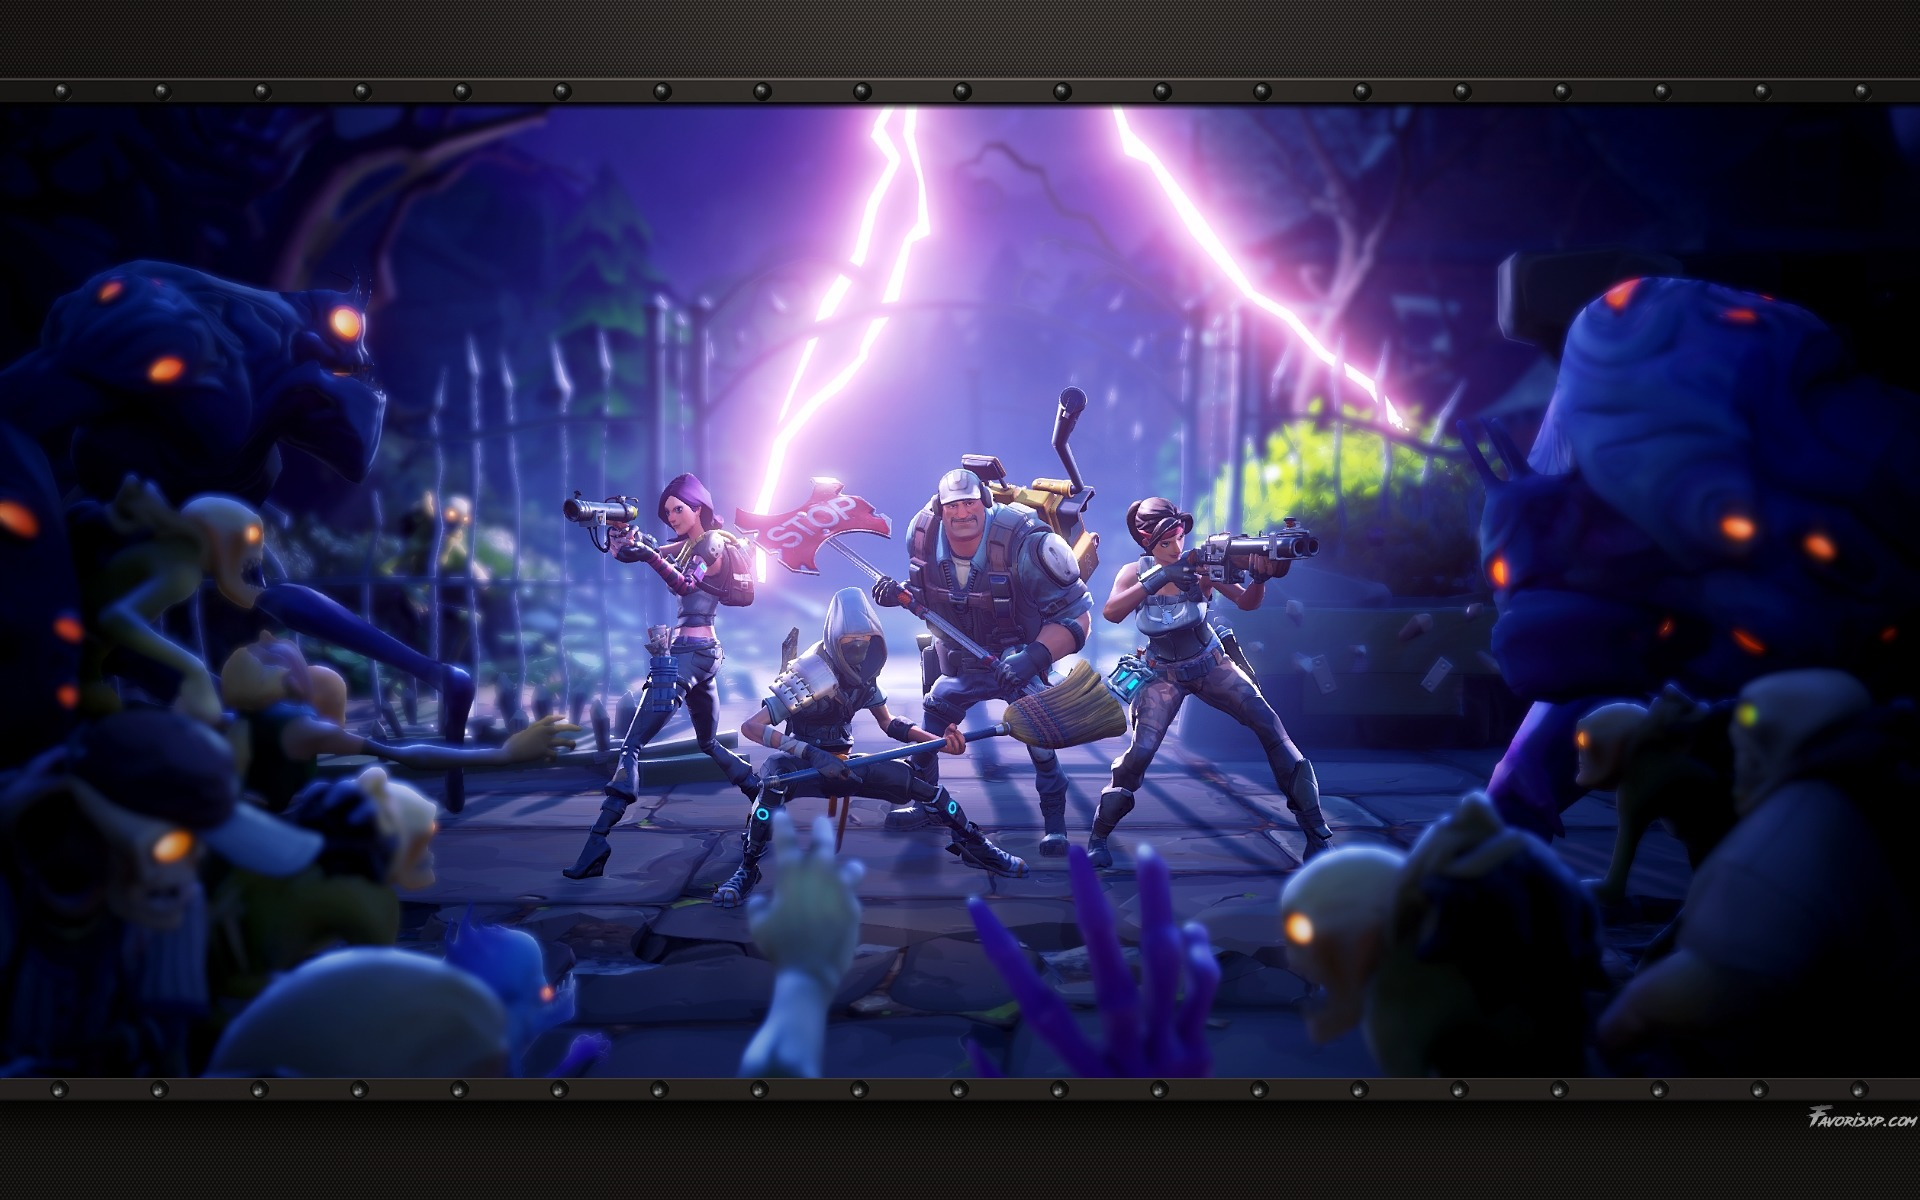 Desktop Wallpaper 2018 Video Game Fortnite Art Hd: Arrière-plans Gratuits Pour PC